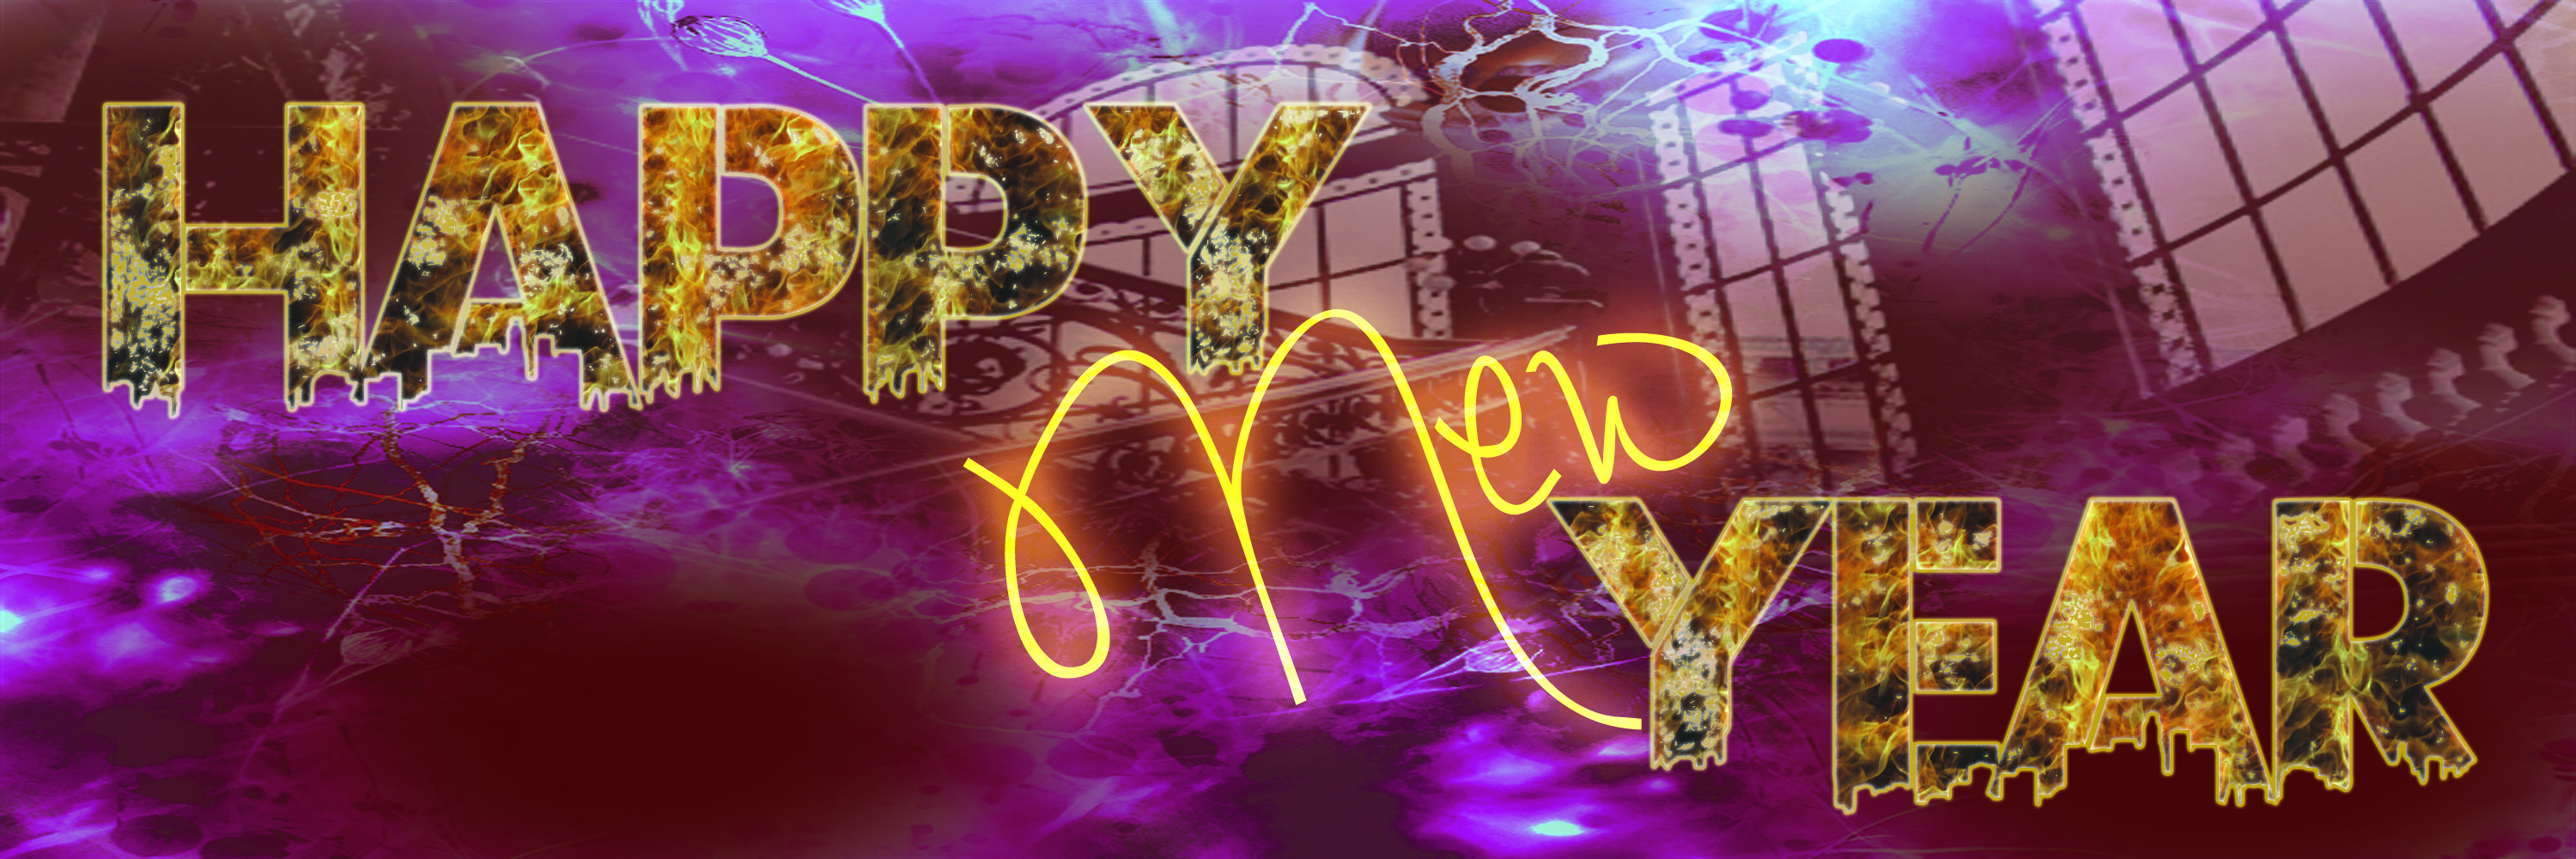 happy new year 2015 text with flame effect #2-1